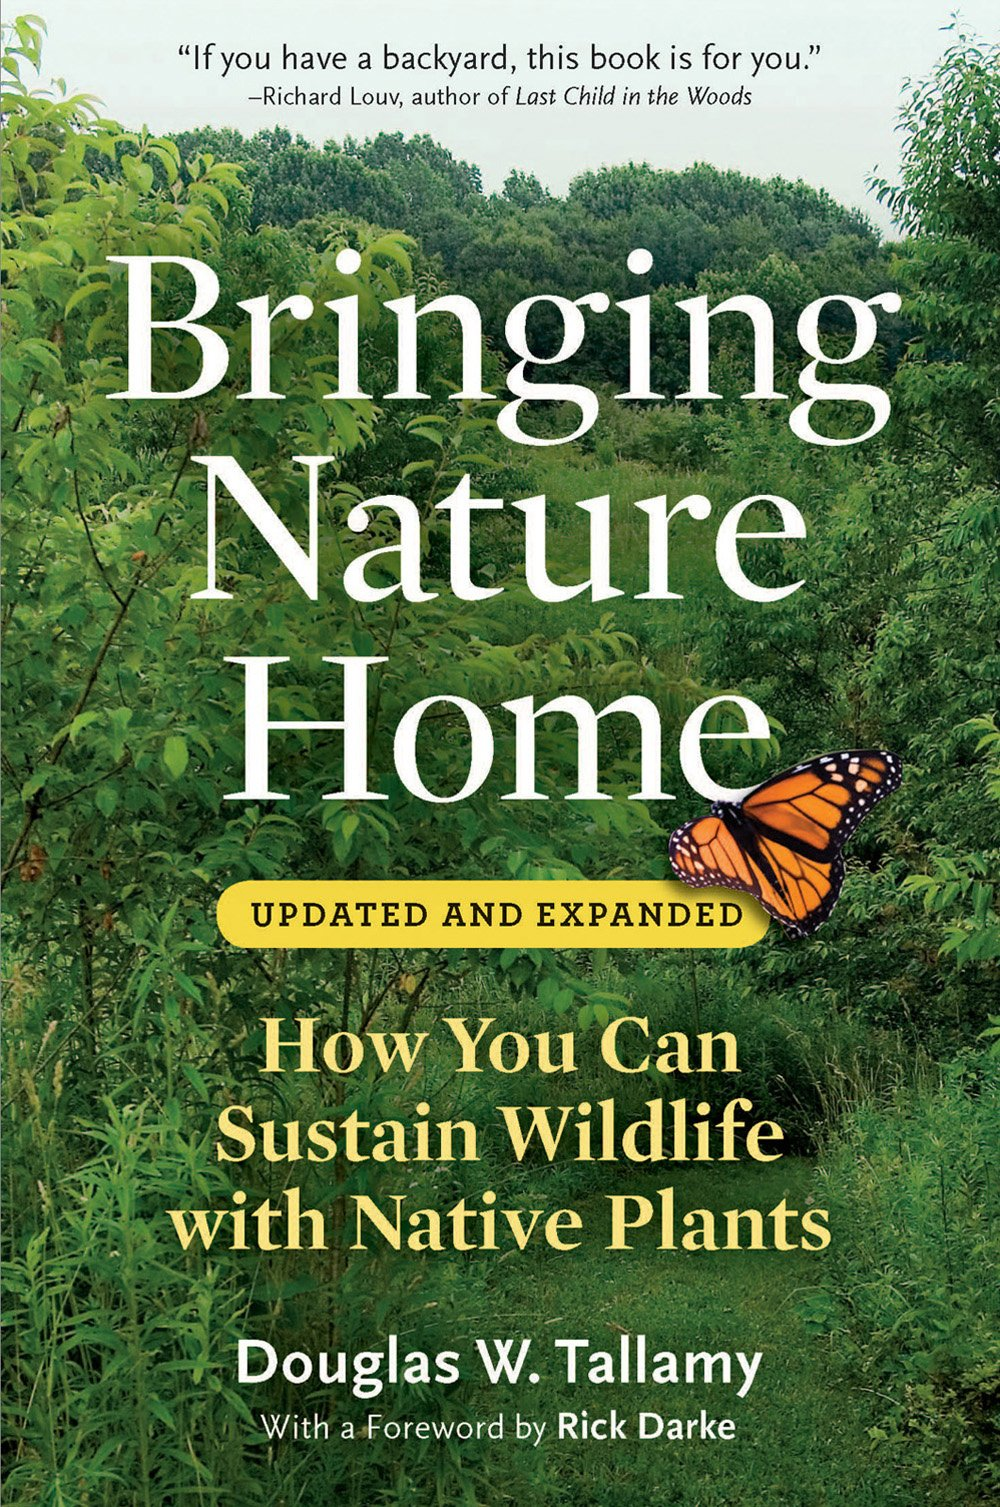 bringing nature home how you can sustain wildlife with native